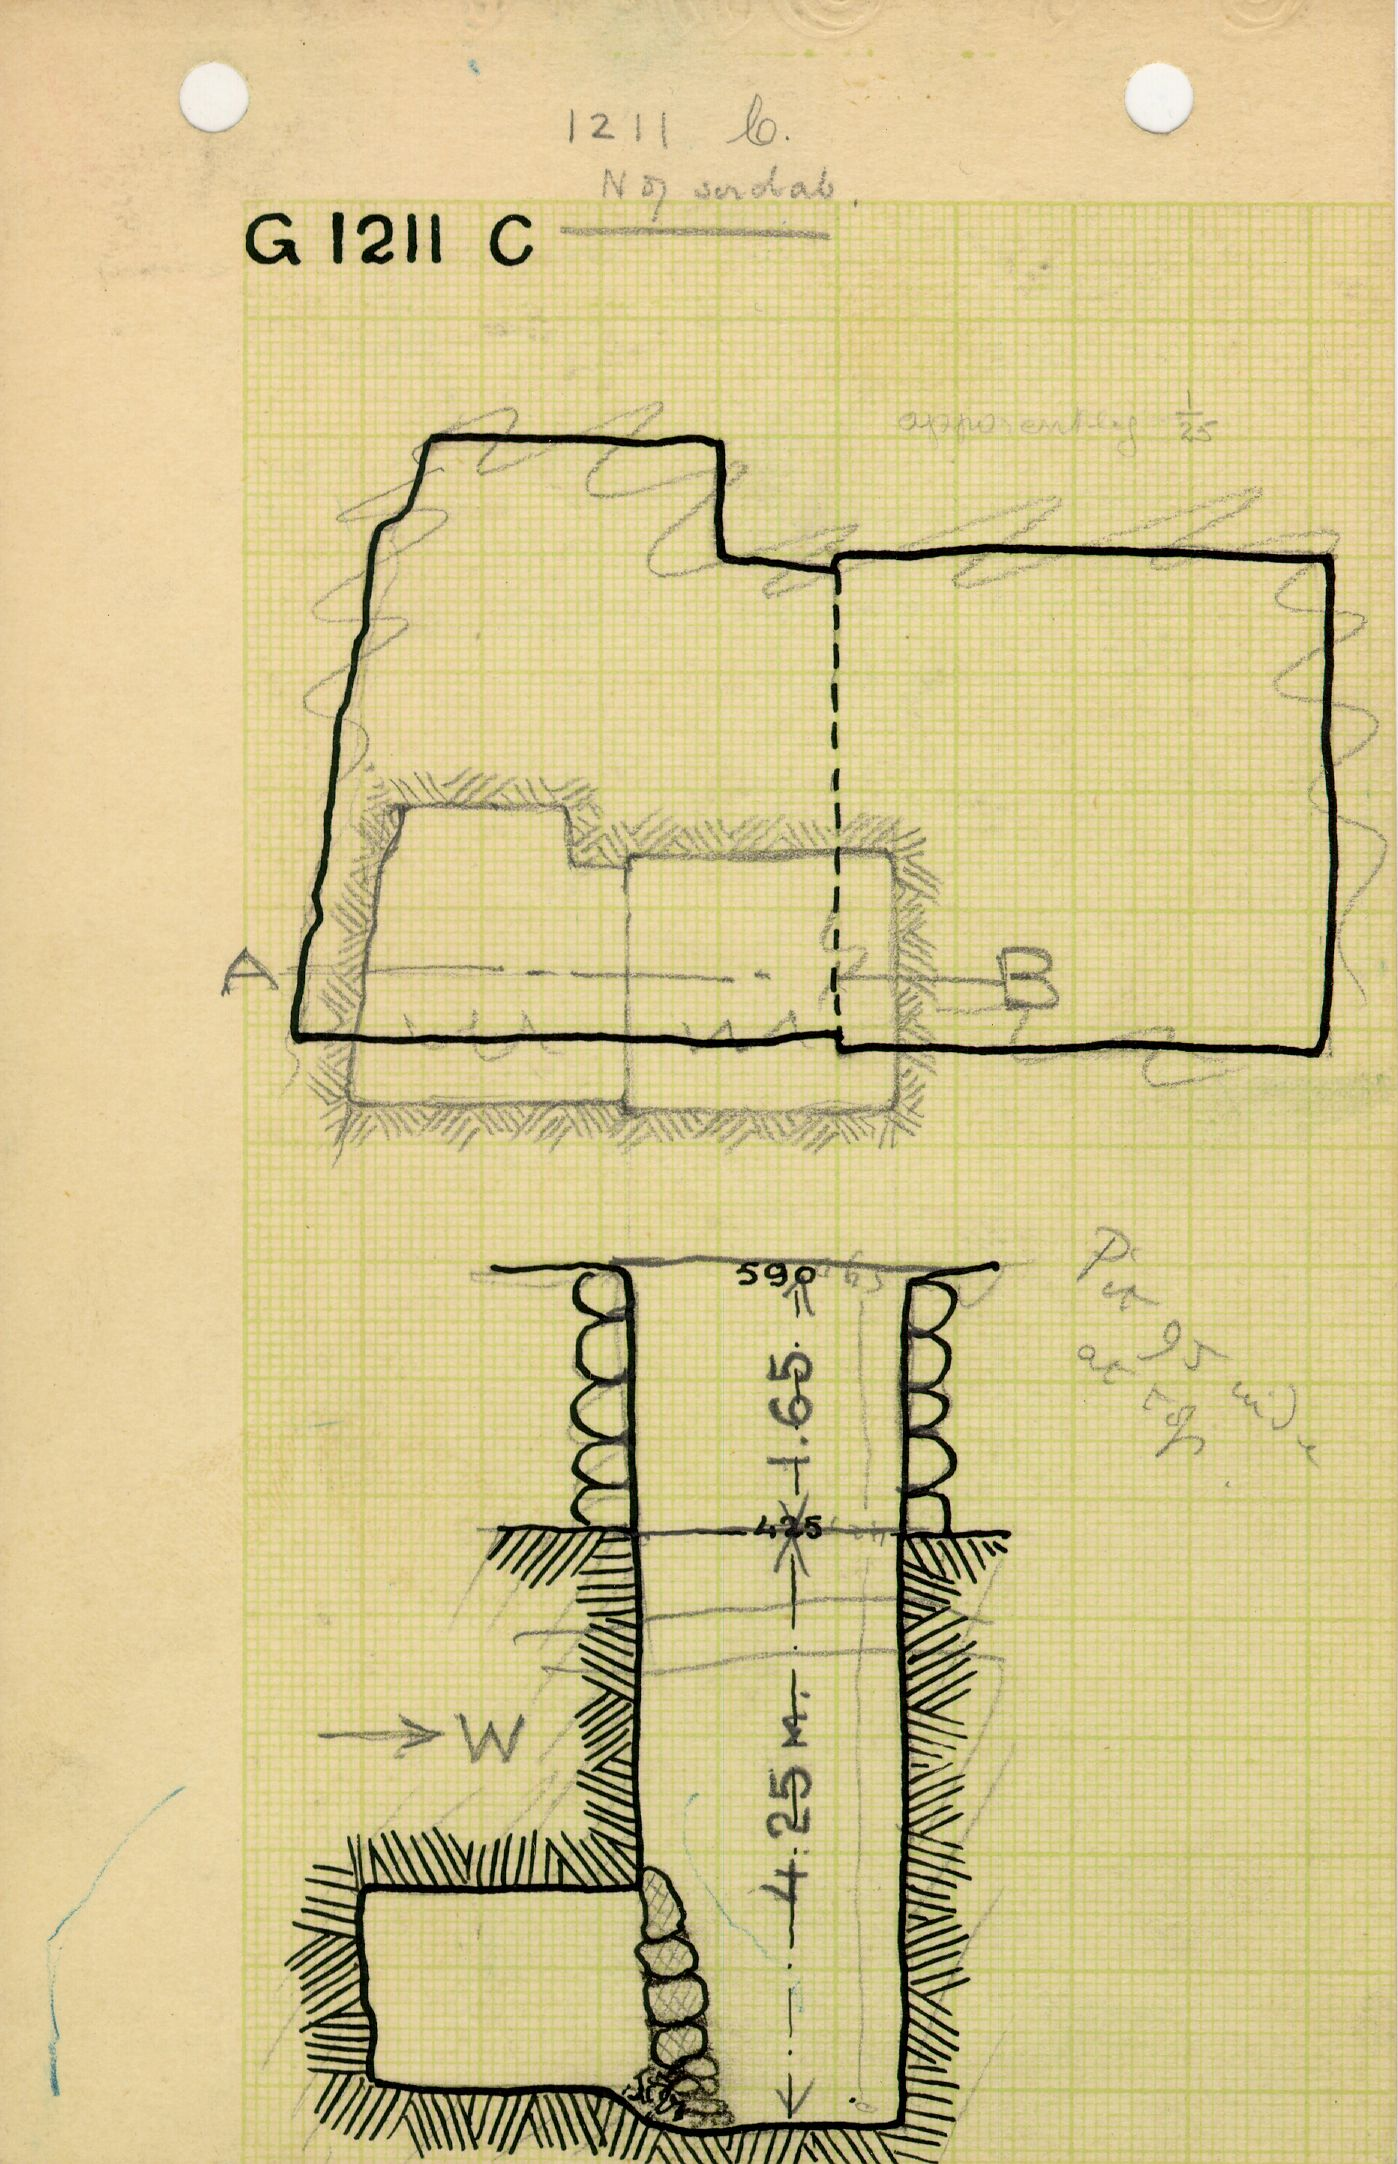 Maps and plans: G 1211, Shaft C